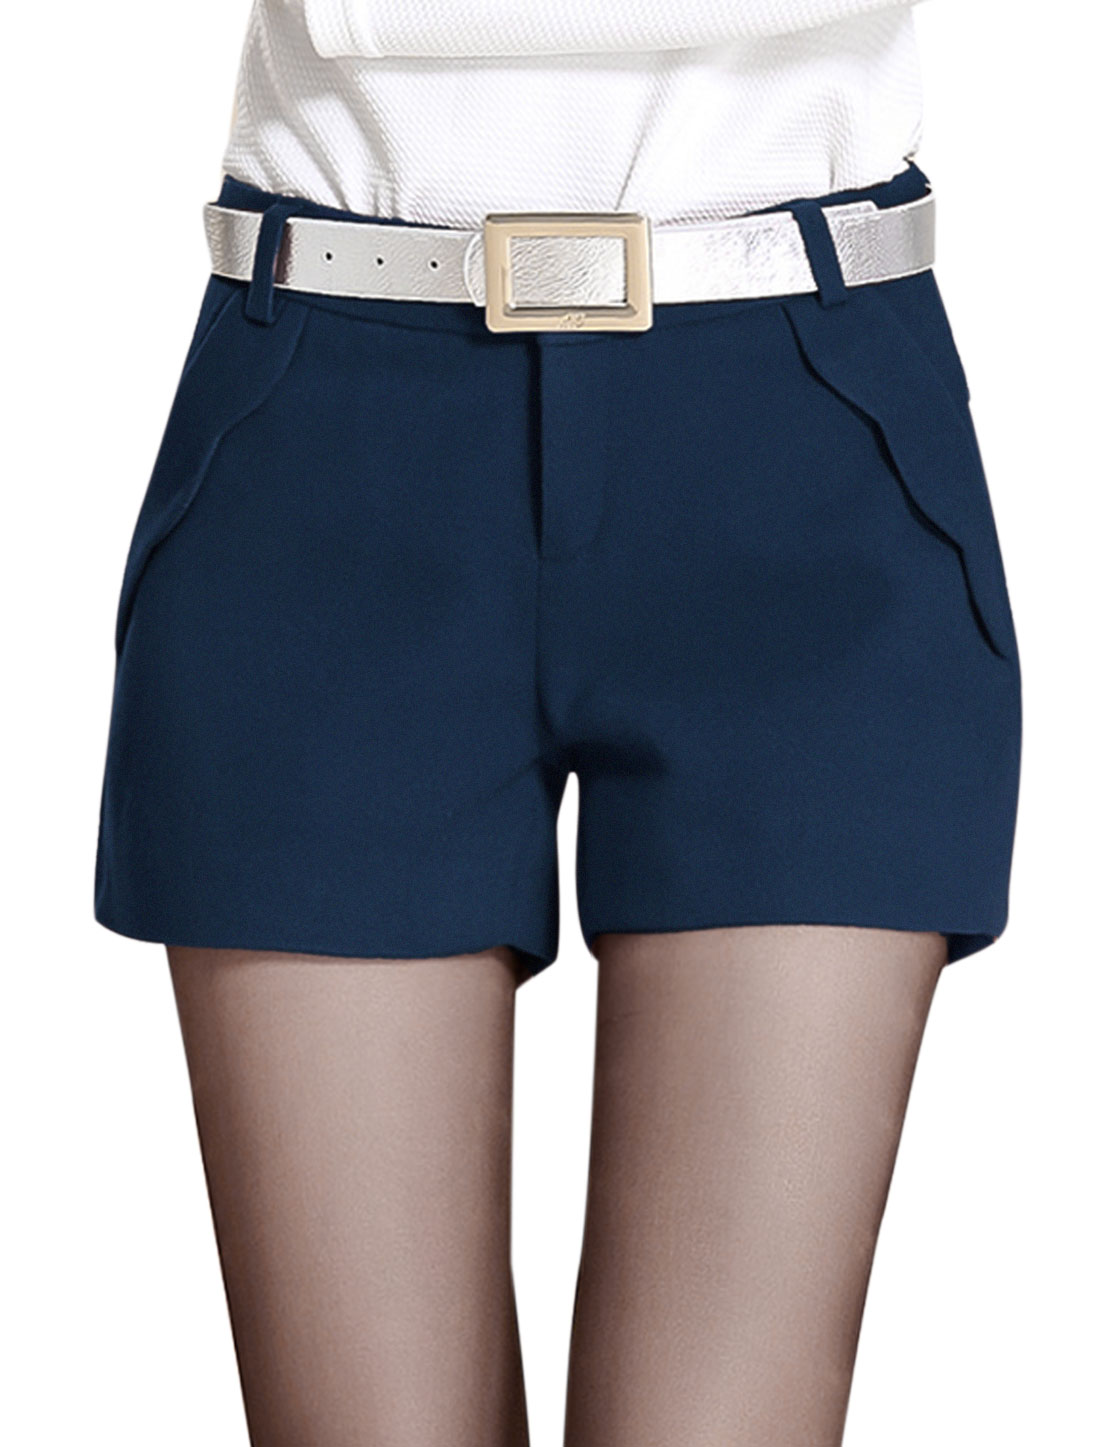 Casual Zip Fly Slant Pockets Front Fashion Shorts for Lady Navy Blue M